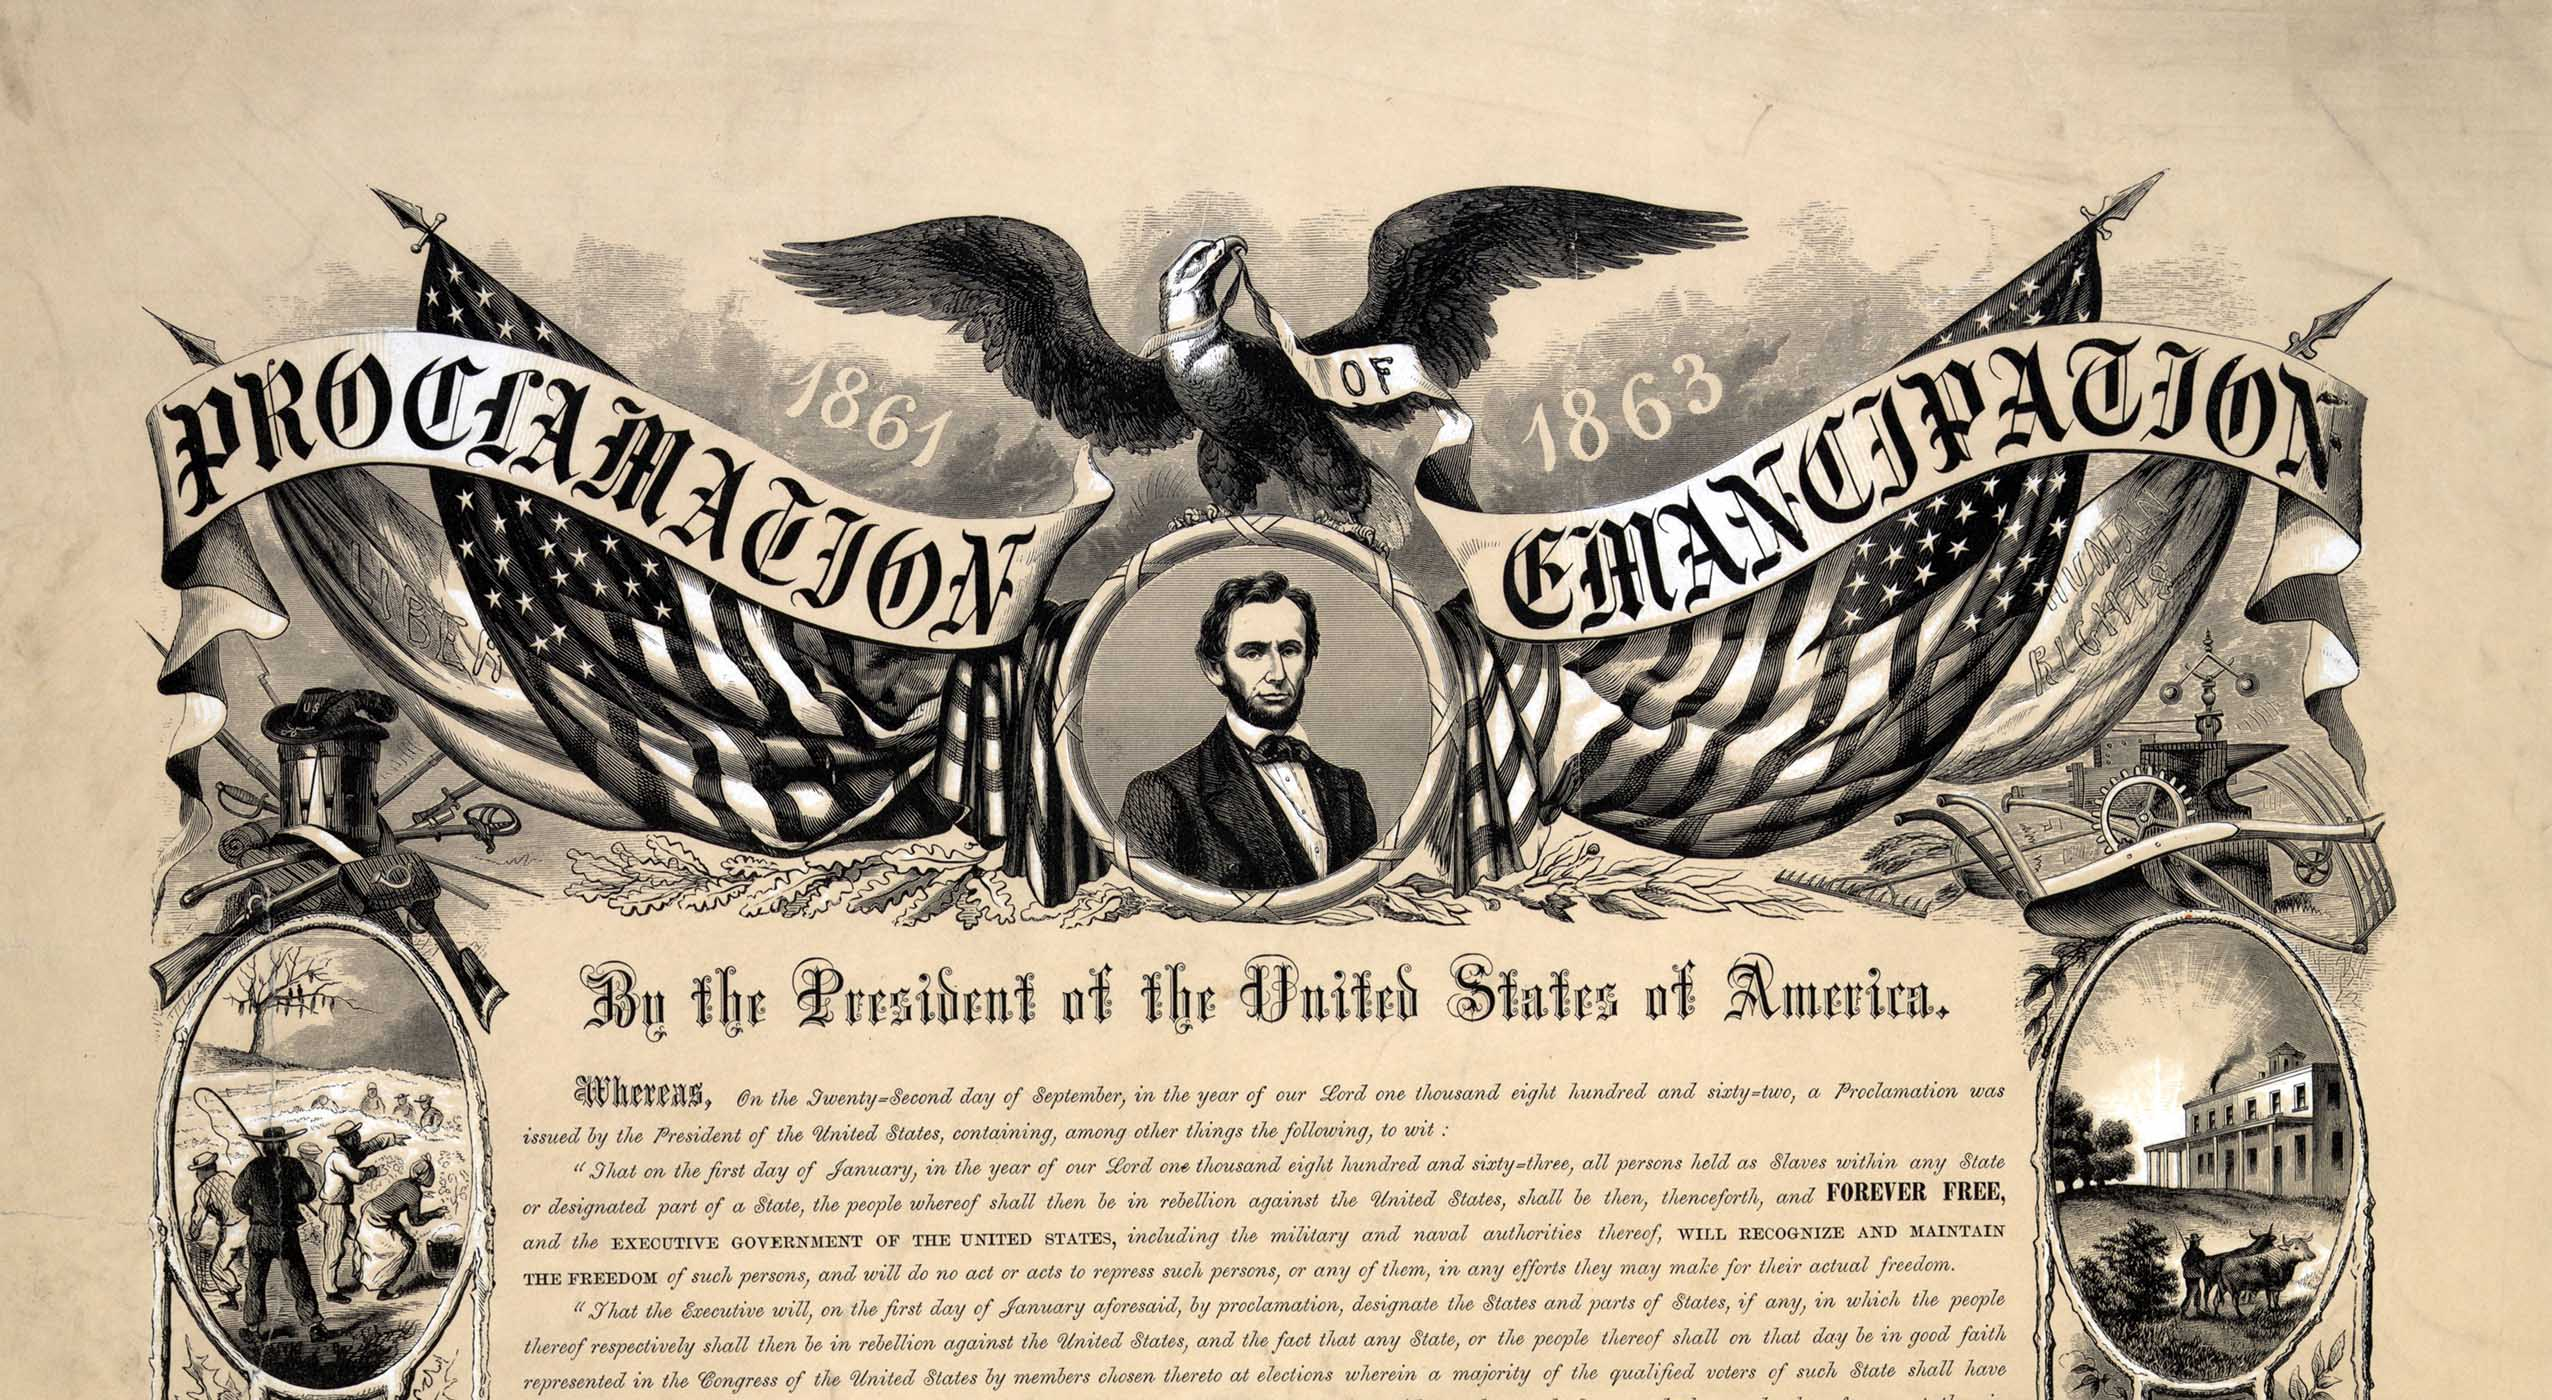 why did lincoln issue the emancipation proclamation in january 1863 and what were its consequences The emancipation proclamation was an executive order issued by abraham lincoln on january 1, 1863 cases in which slaves were awarded freedom.